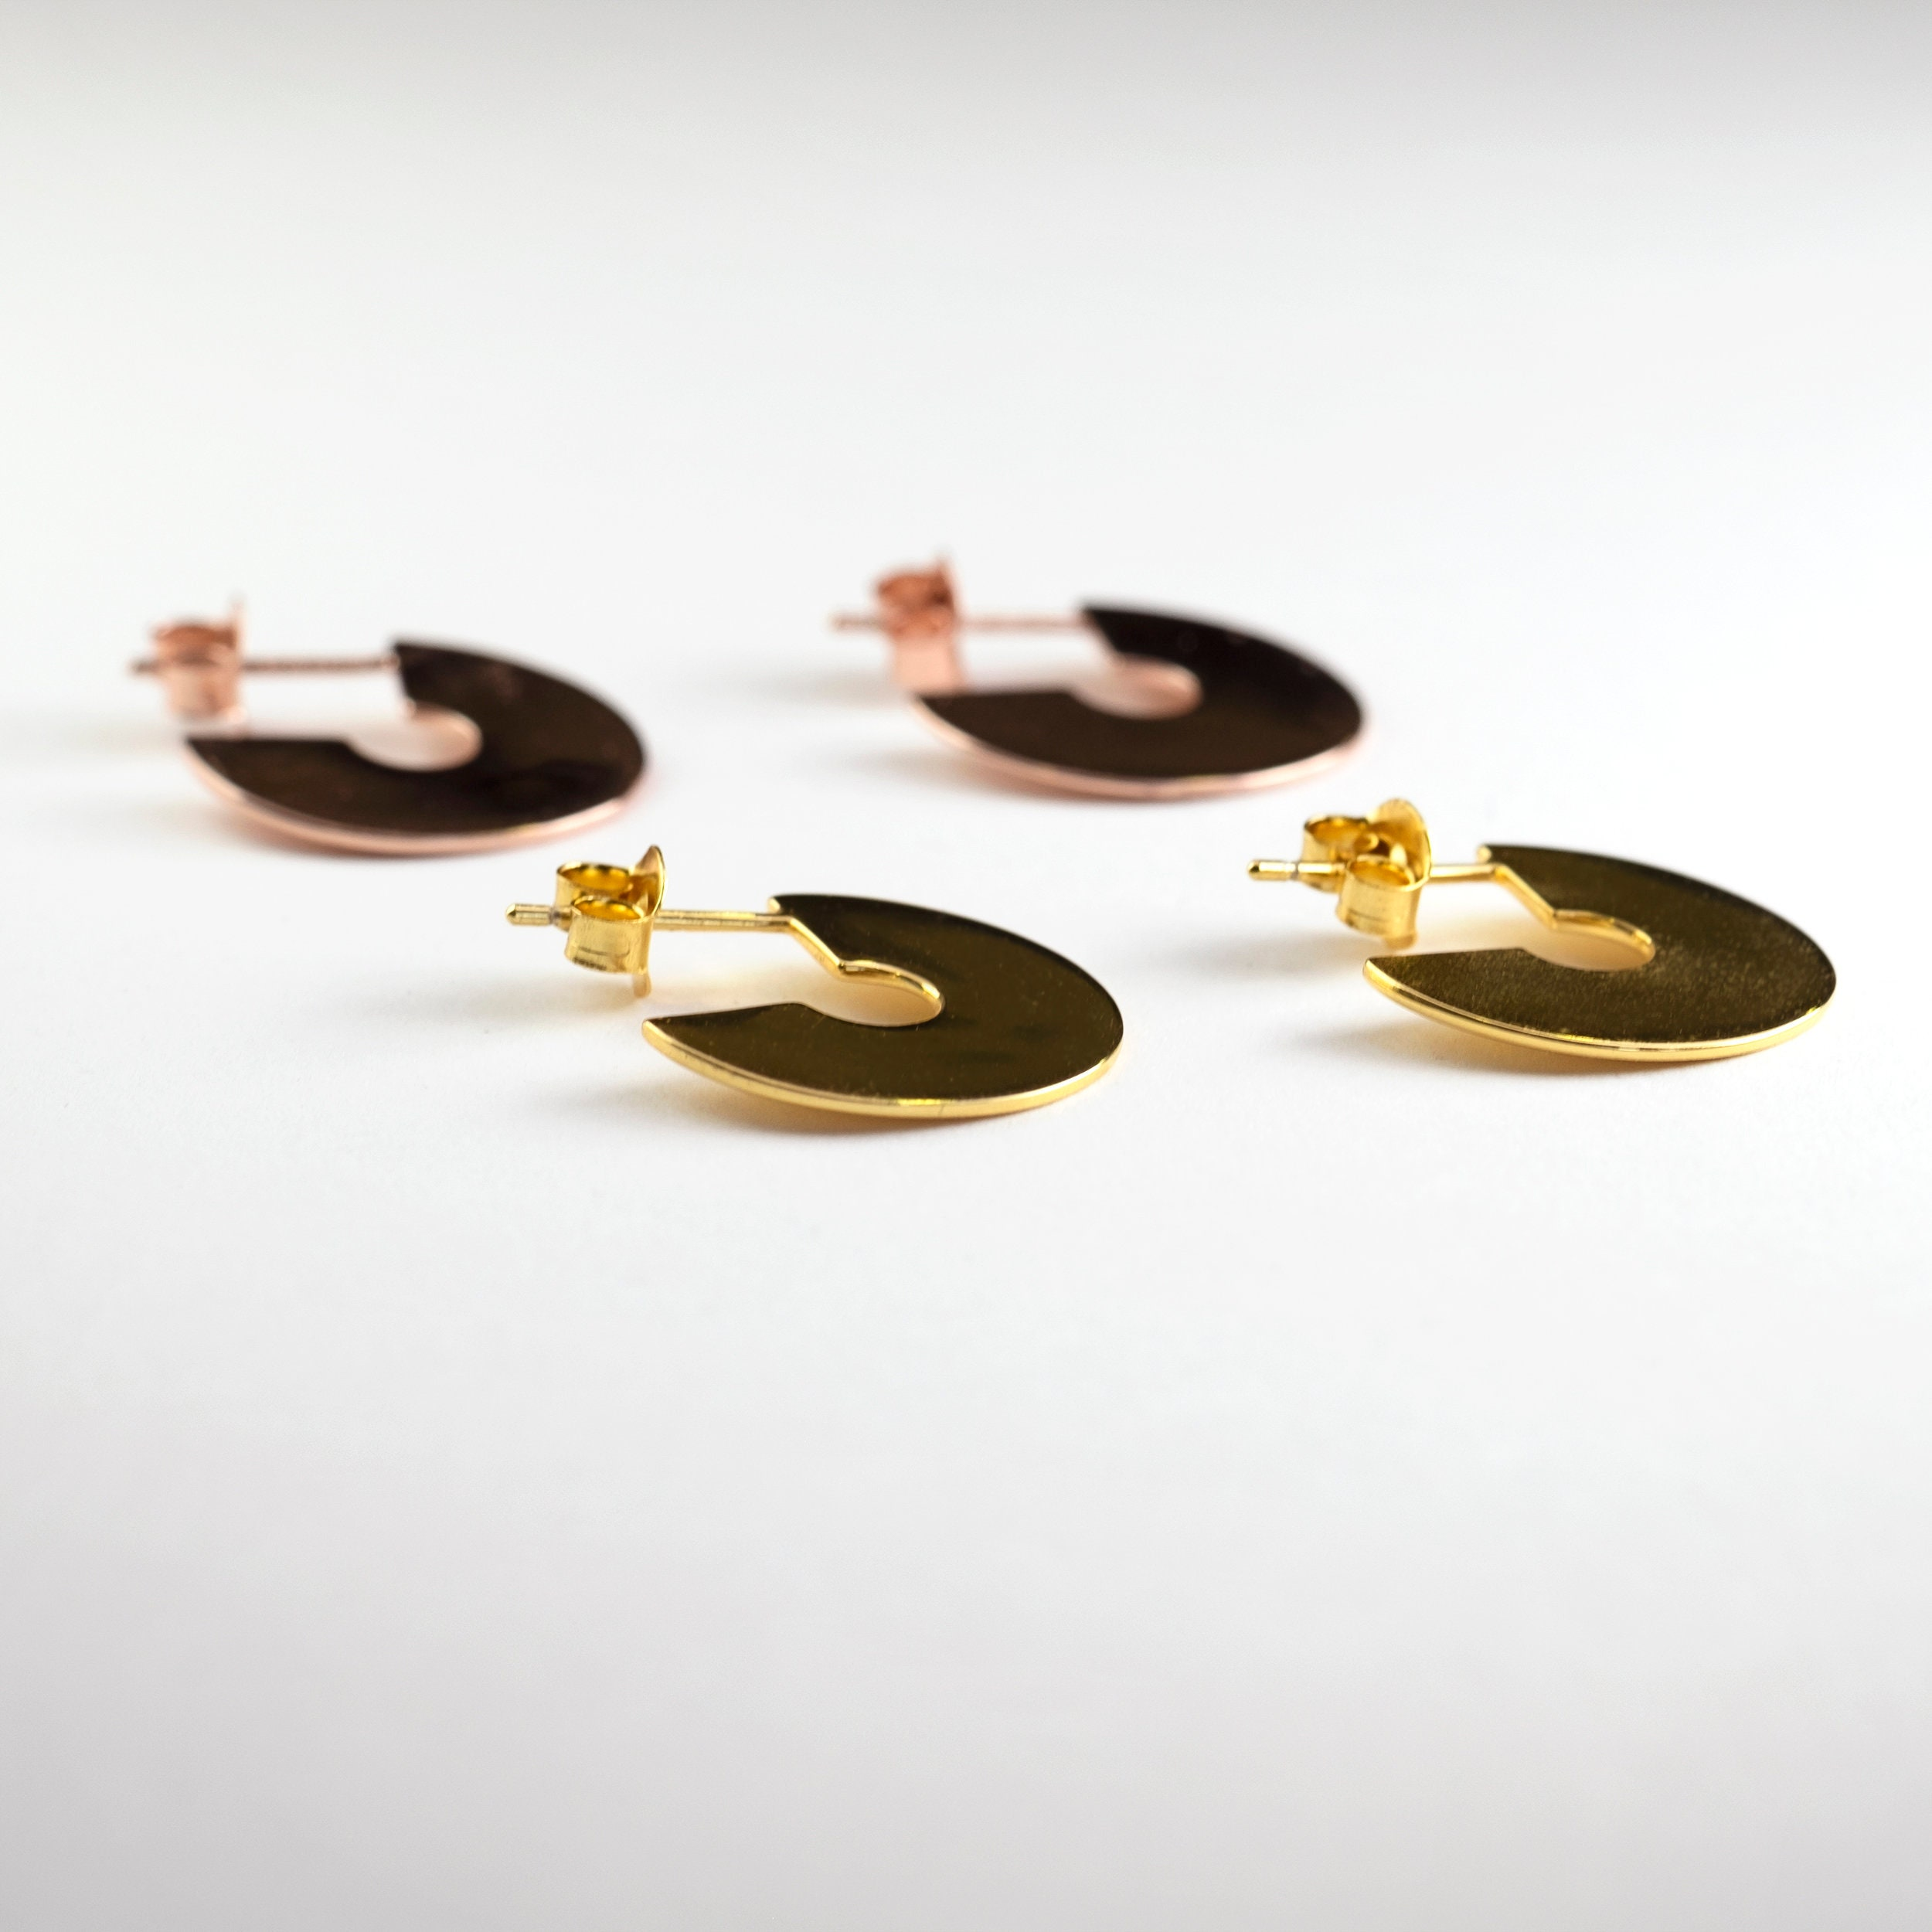 0c0d7a445 Sterling Silver Disc Earring, Big Disc Earring, Flat Hoop Gold, Big Thin  Hoop, Disc Earring stud, Half Hoop Earring, Modern Hoop Earring